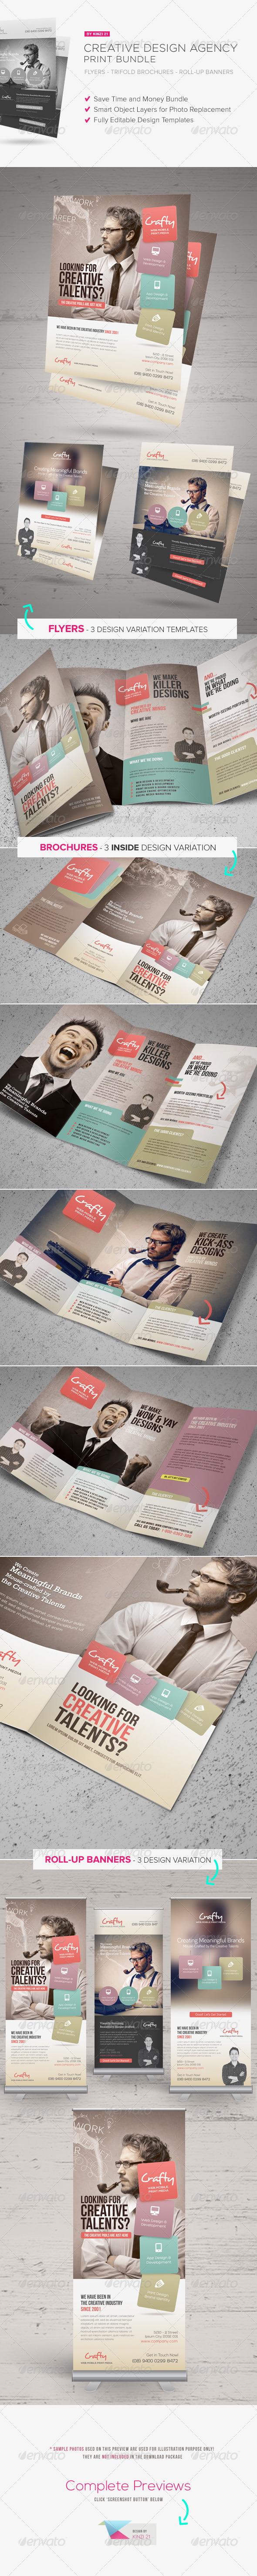 GraphicRiver Creative Design Agency Print Bundle 6523575